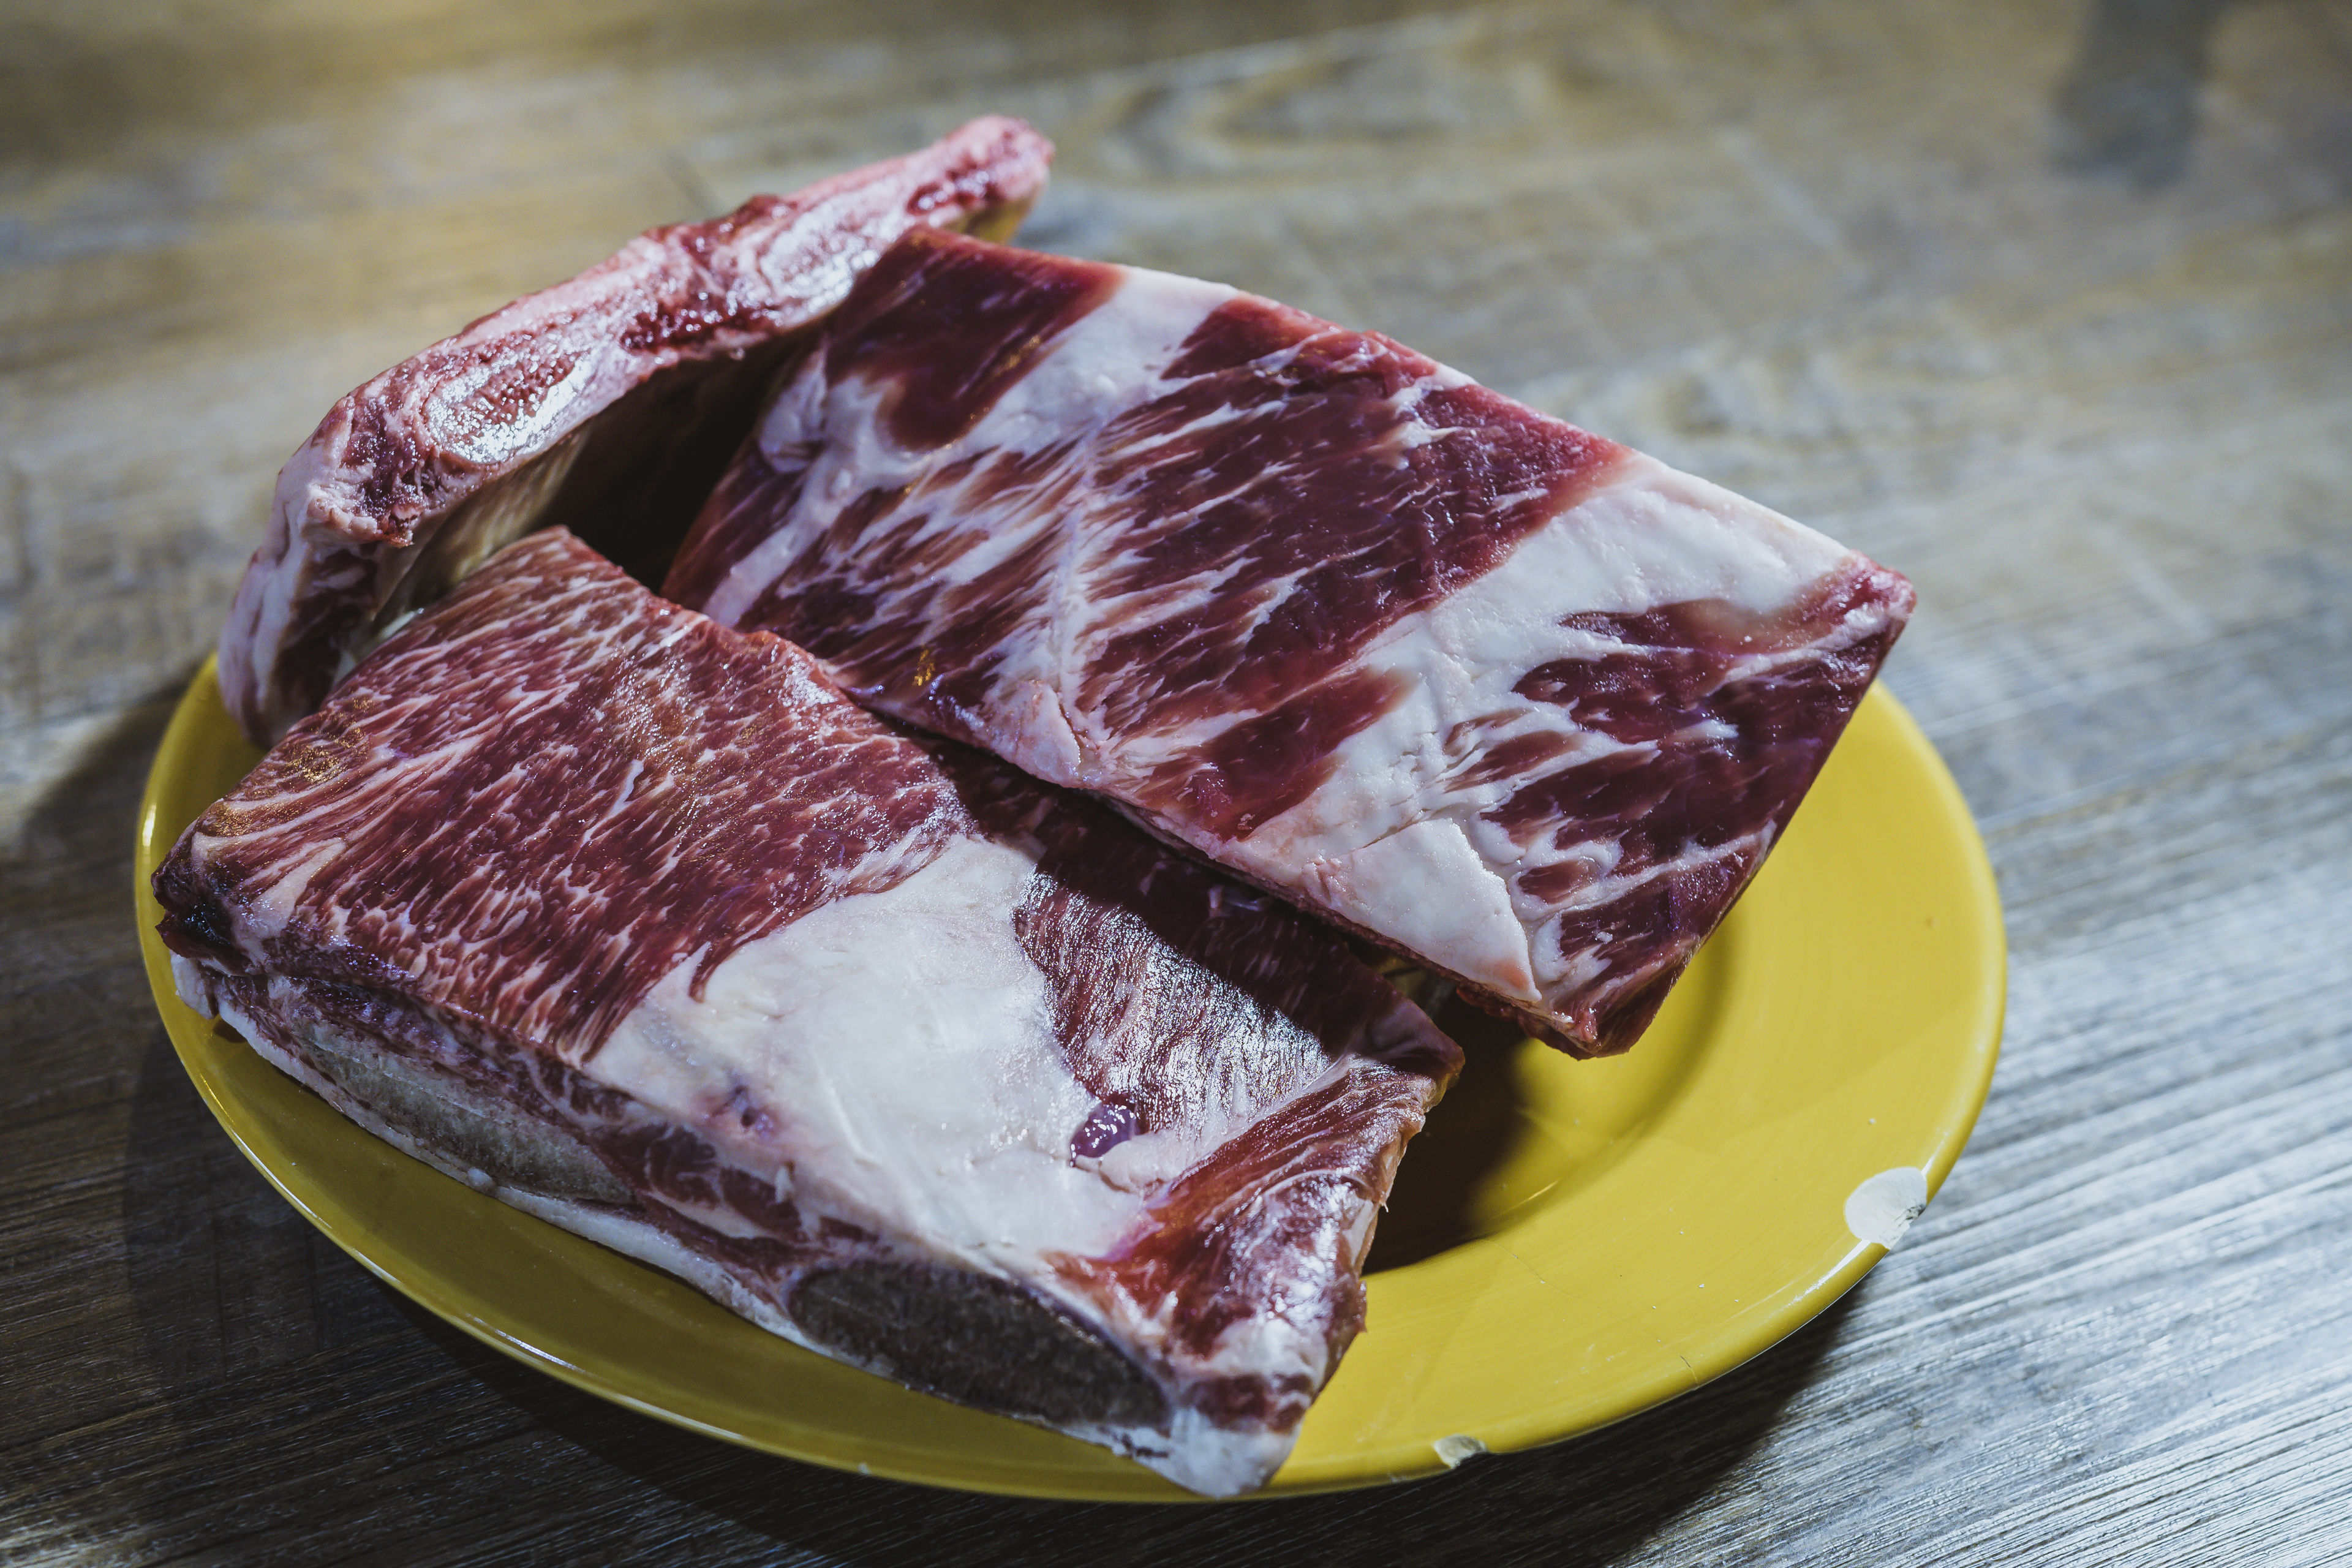 These short ribs are from this year's angus steer